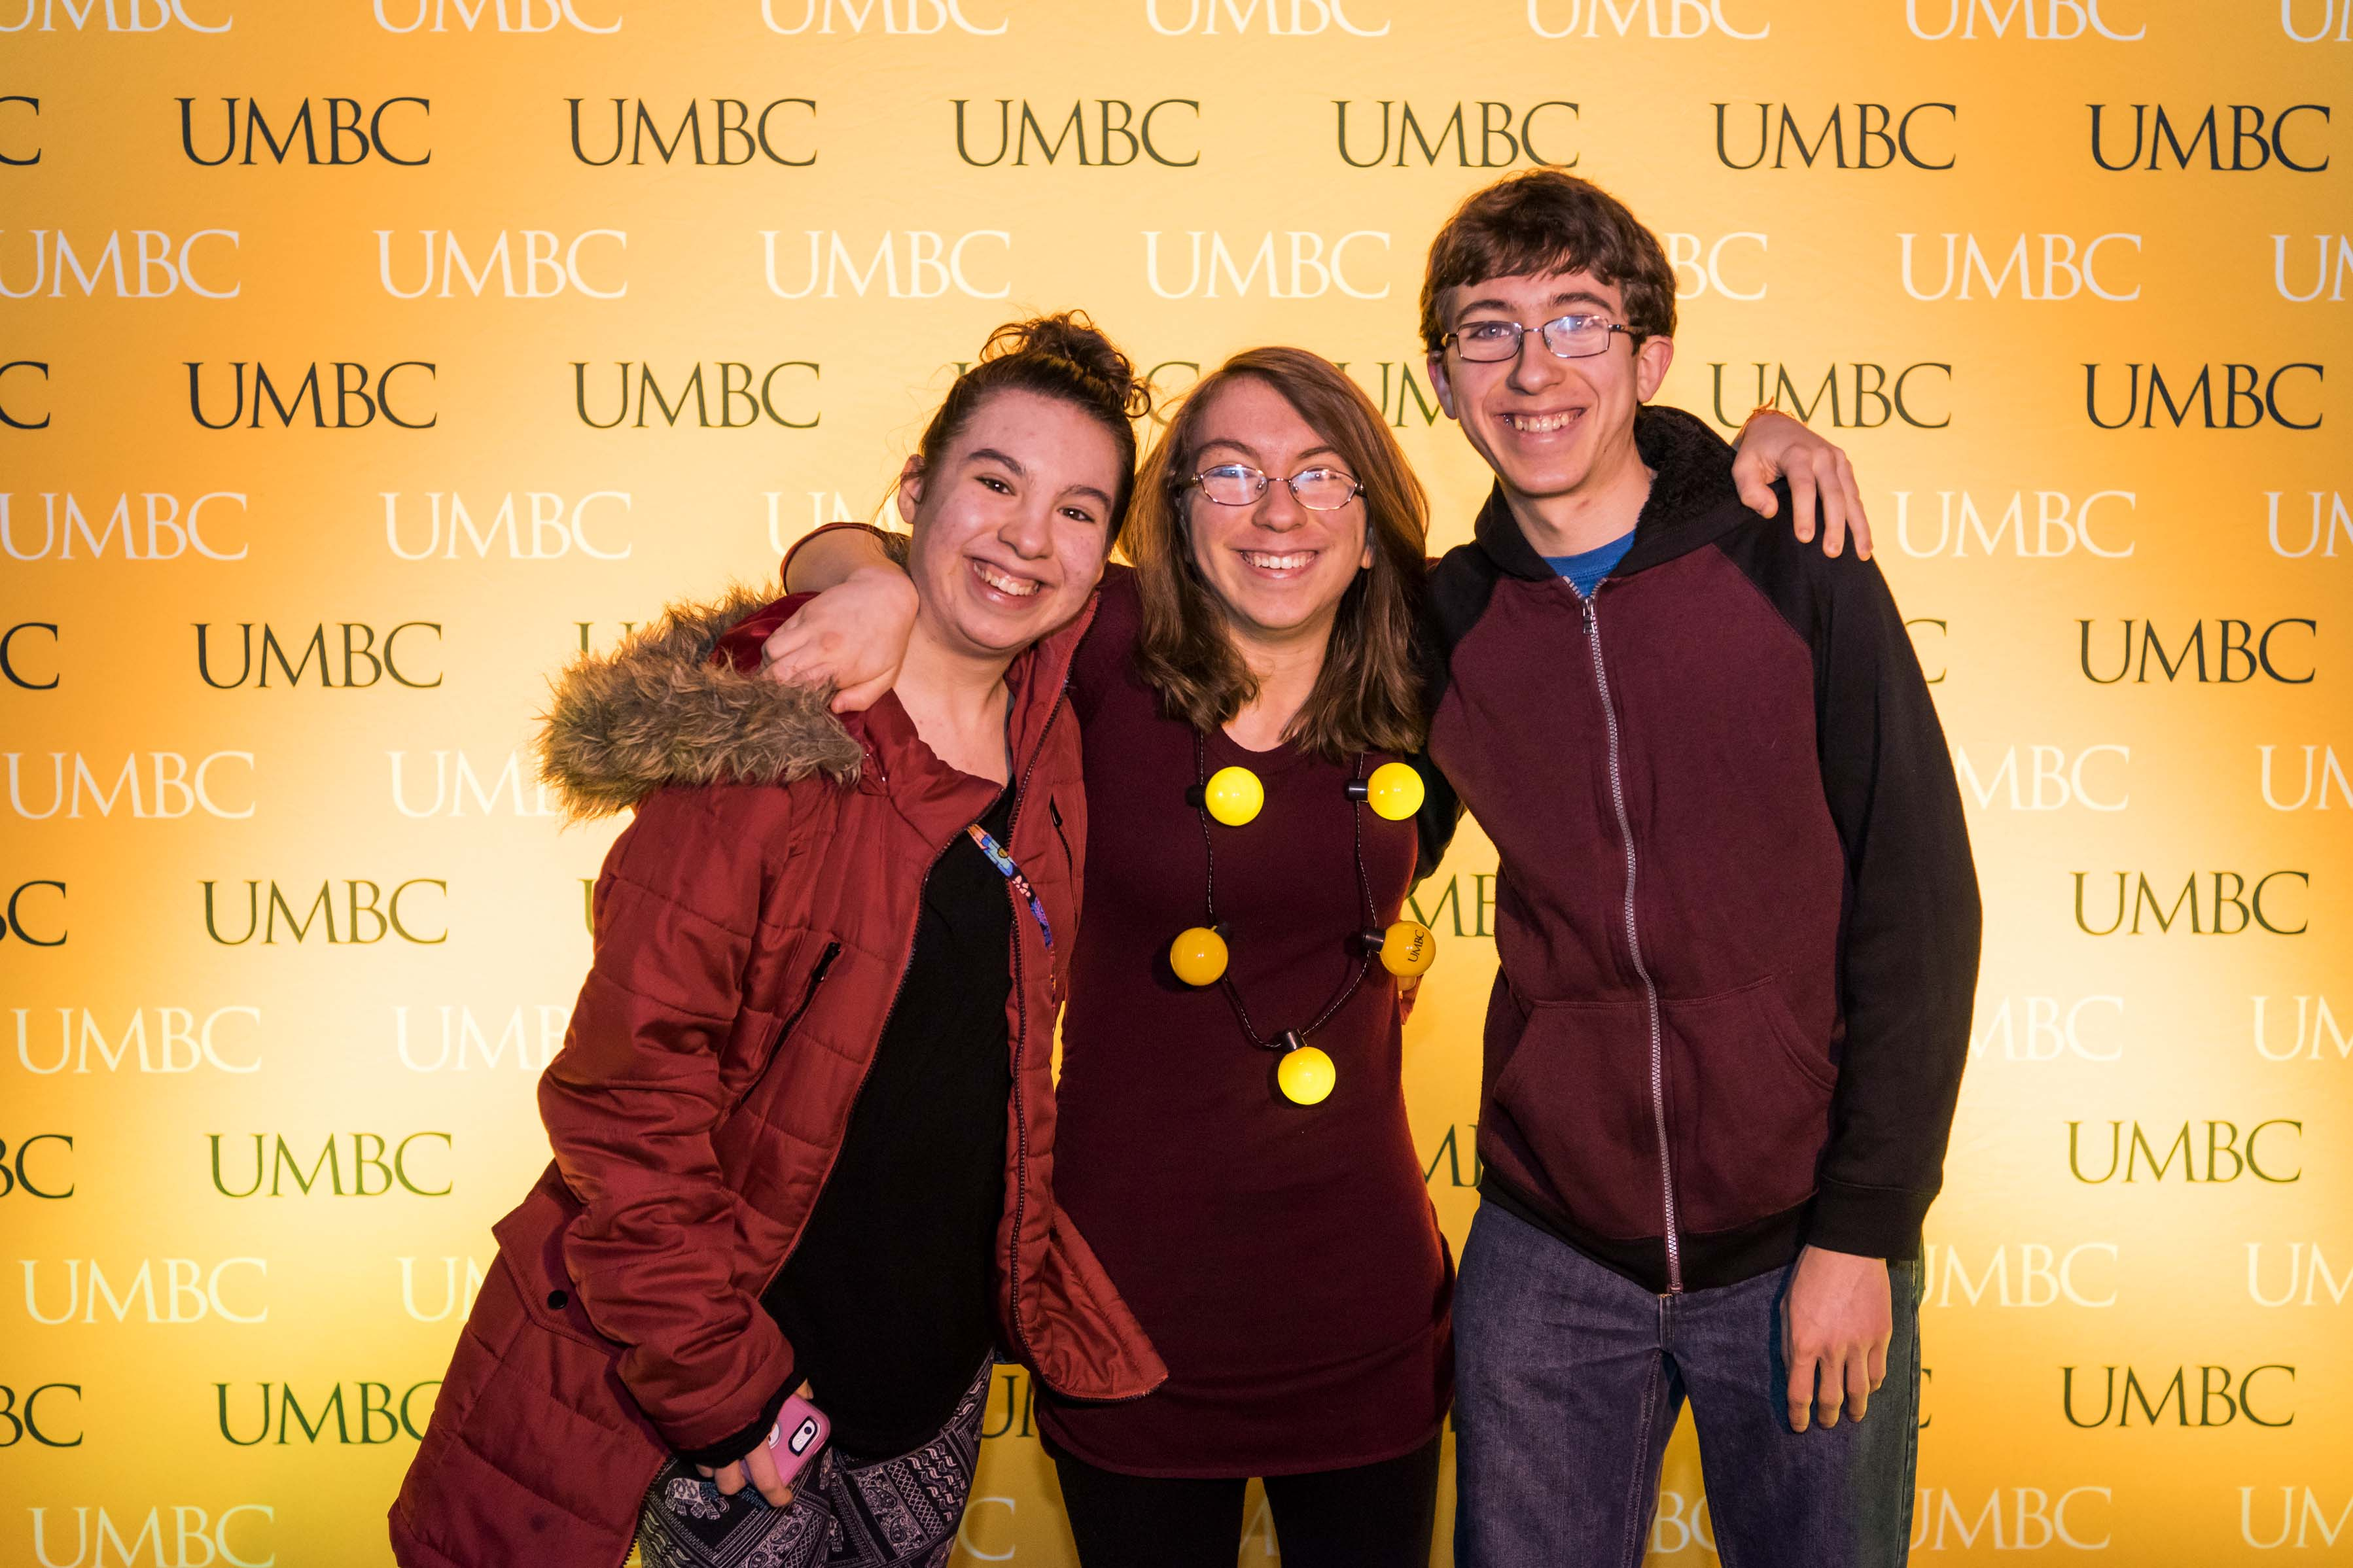 Siblings pose in front of UMBC wall at Pier 5 reception